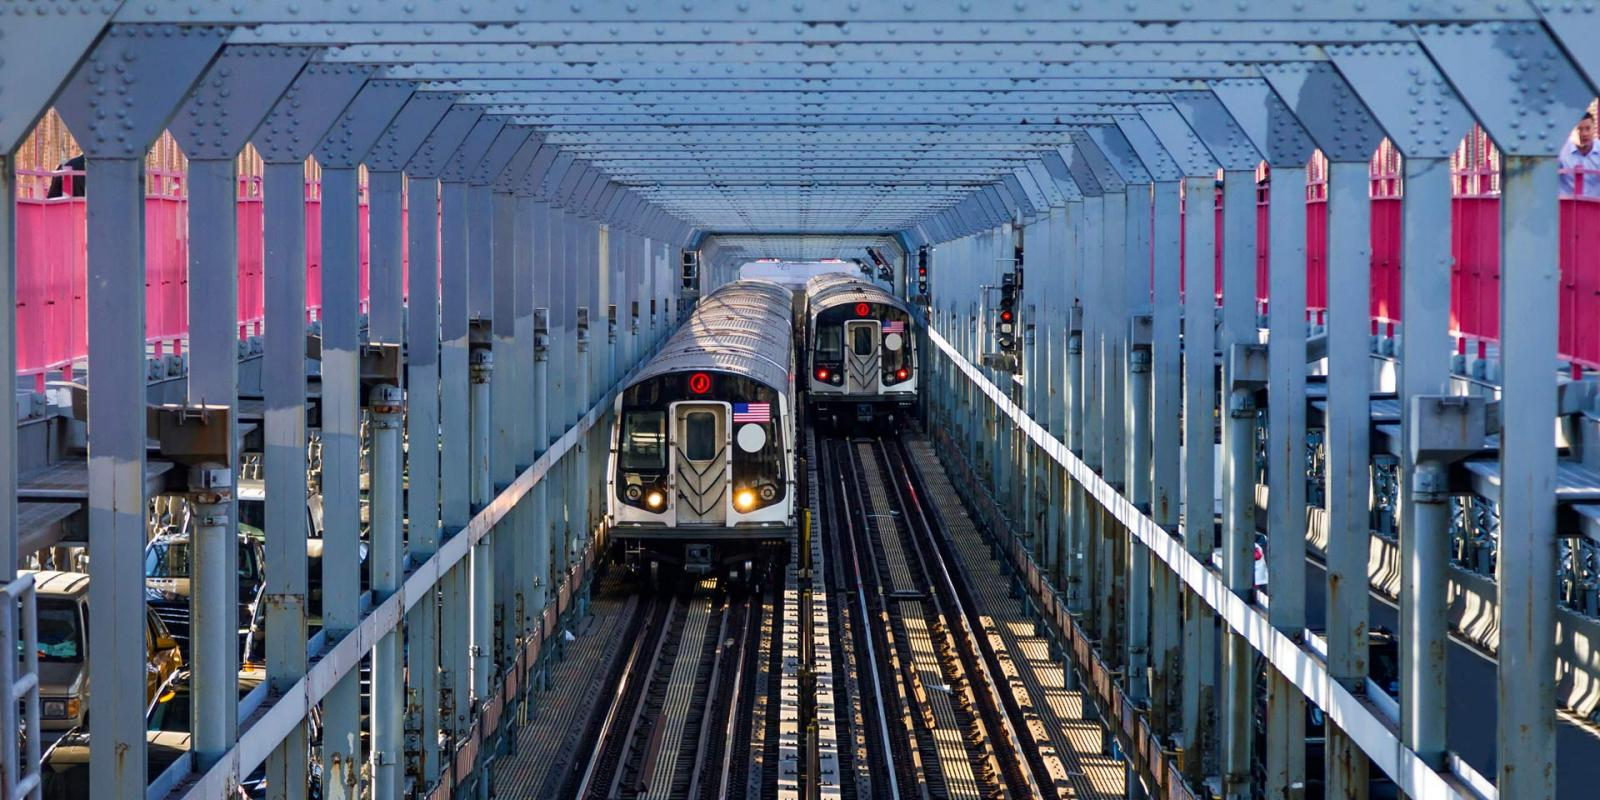 Metrocard New York Kaufen Subway Fahren Das Beste Ticket Video